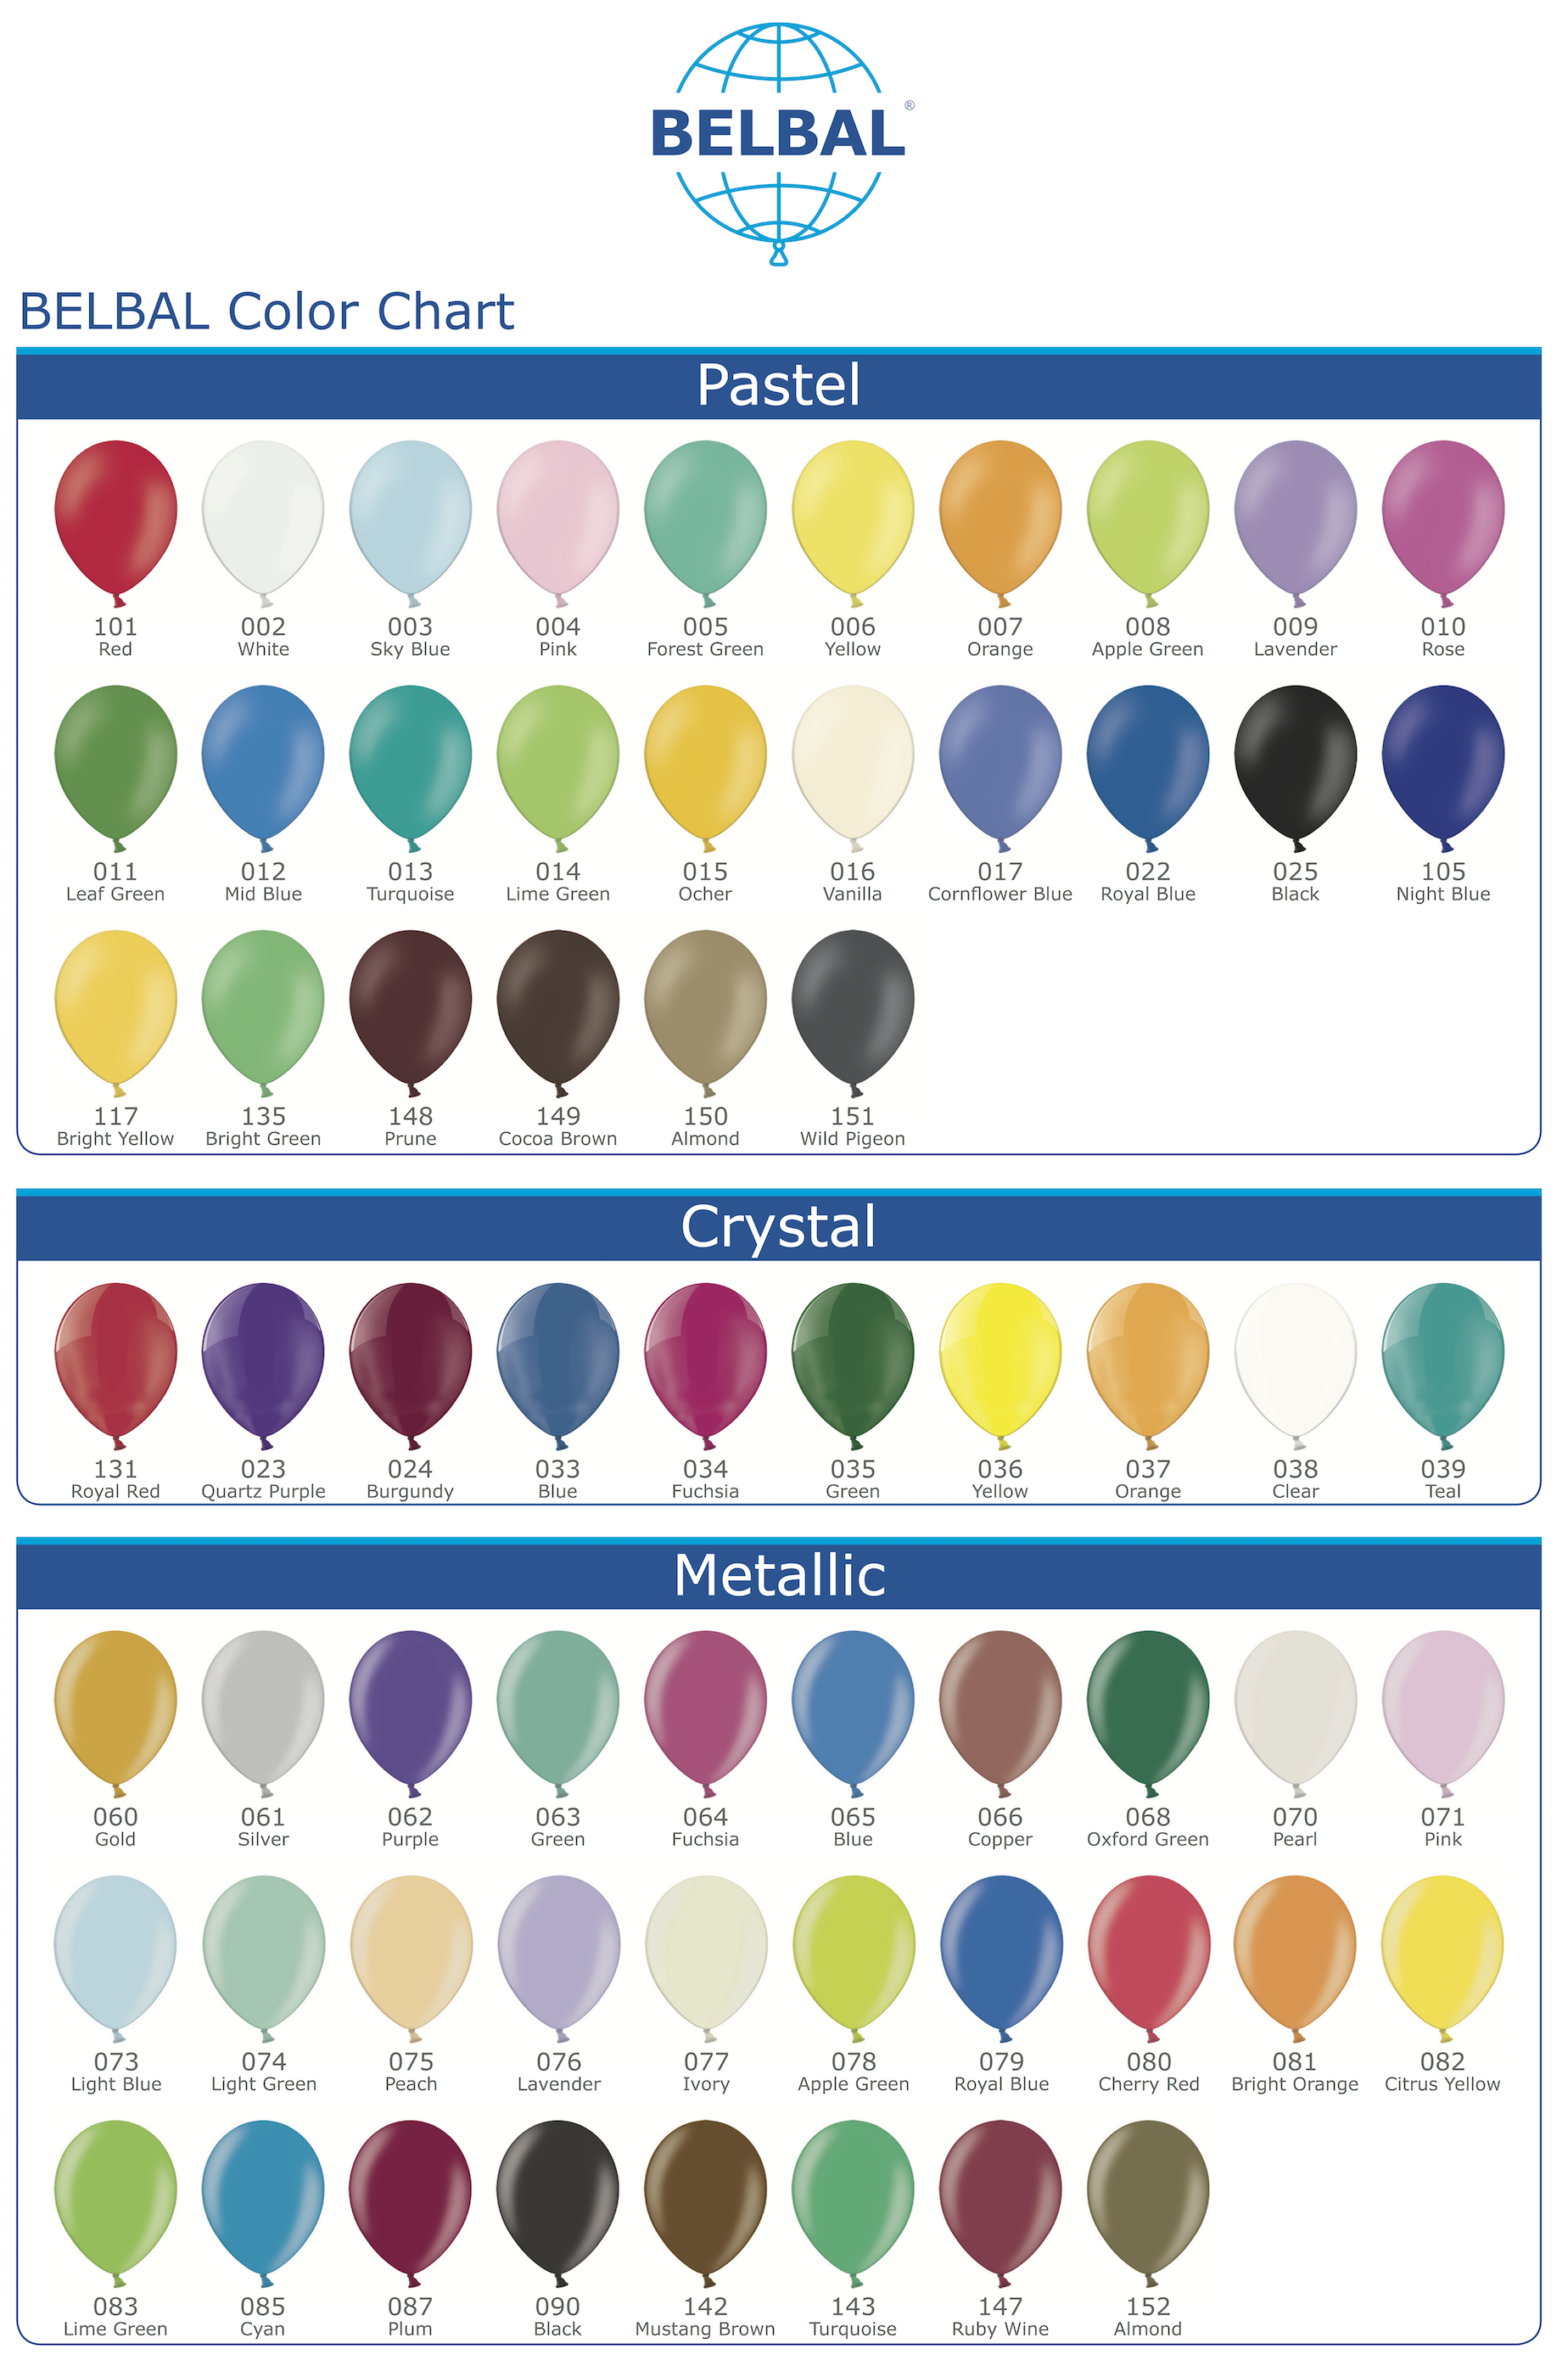 BELBAL Color Chart